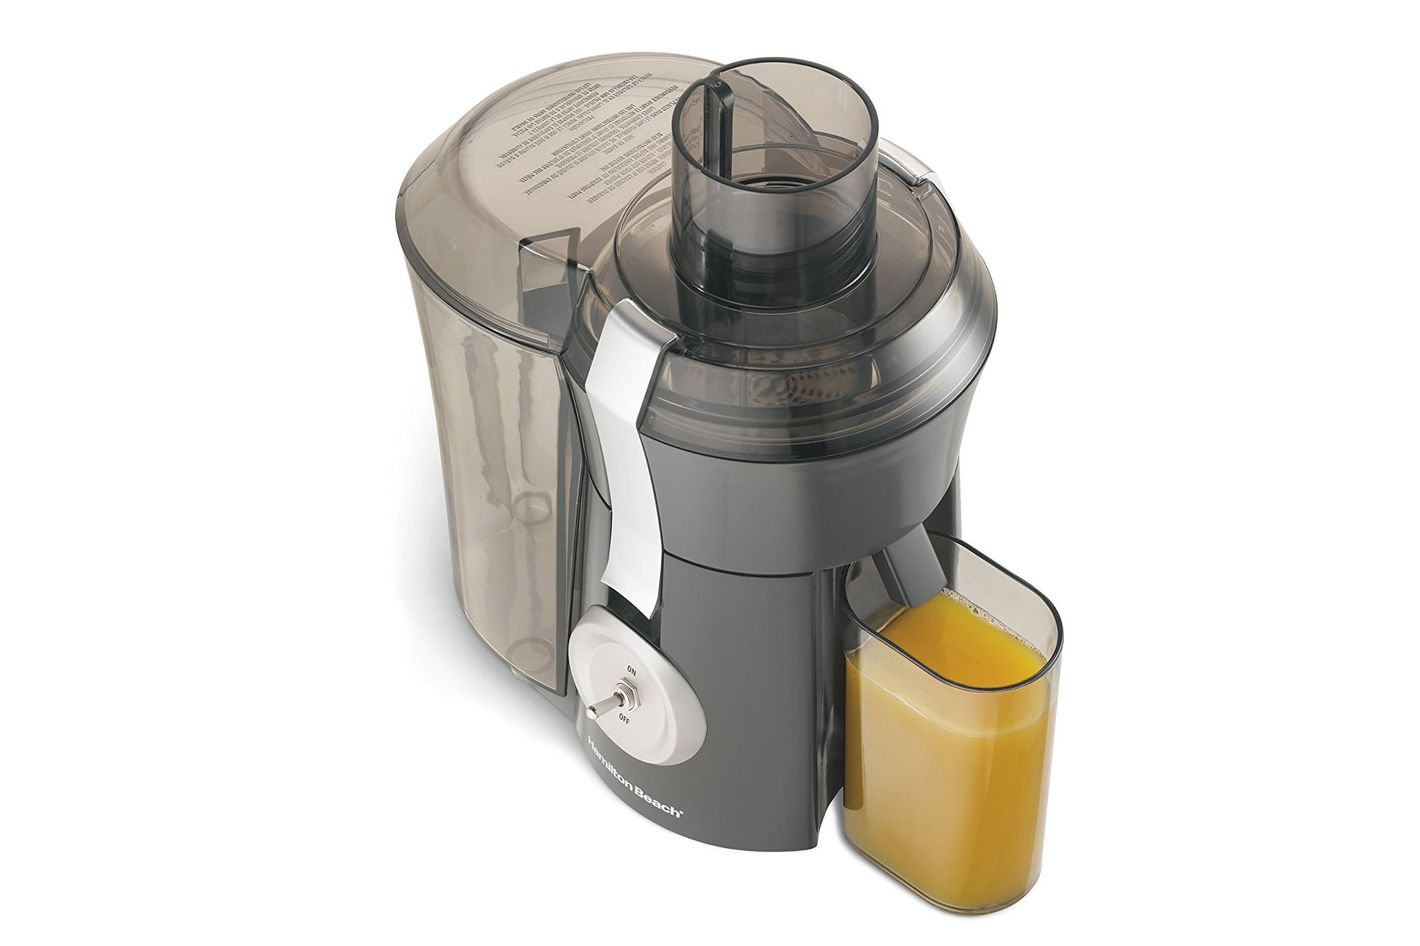 Best Masticating Juicer For Celery : Best Electric Juicers, Masticating Juicers on Amazon